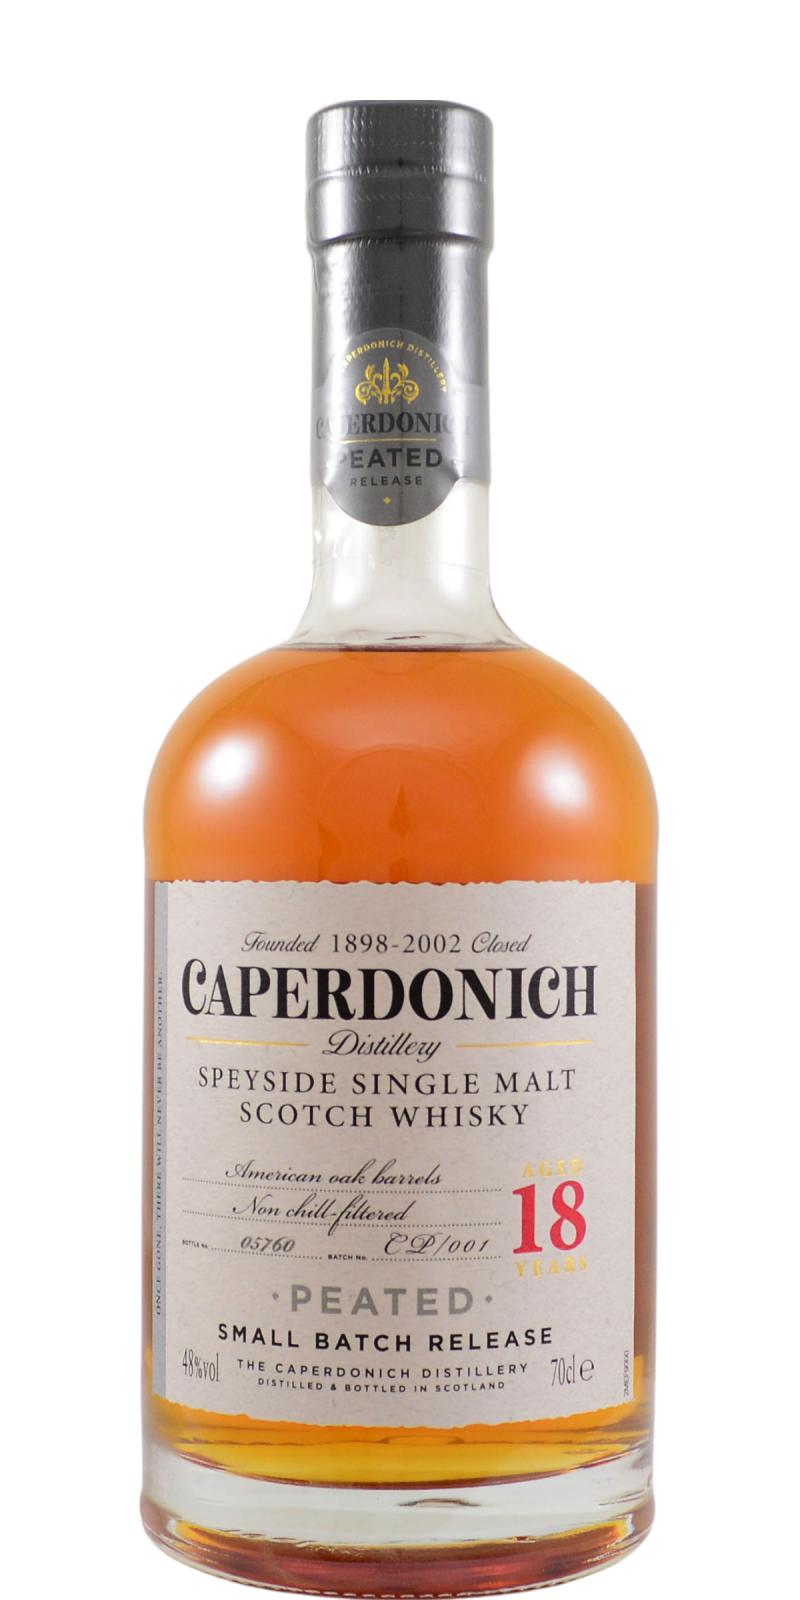 Caperdonich 18-year-old - Peated